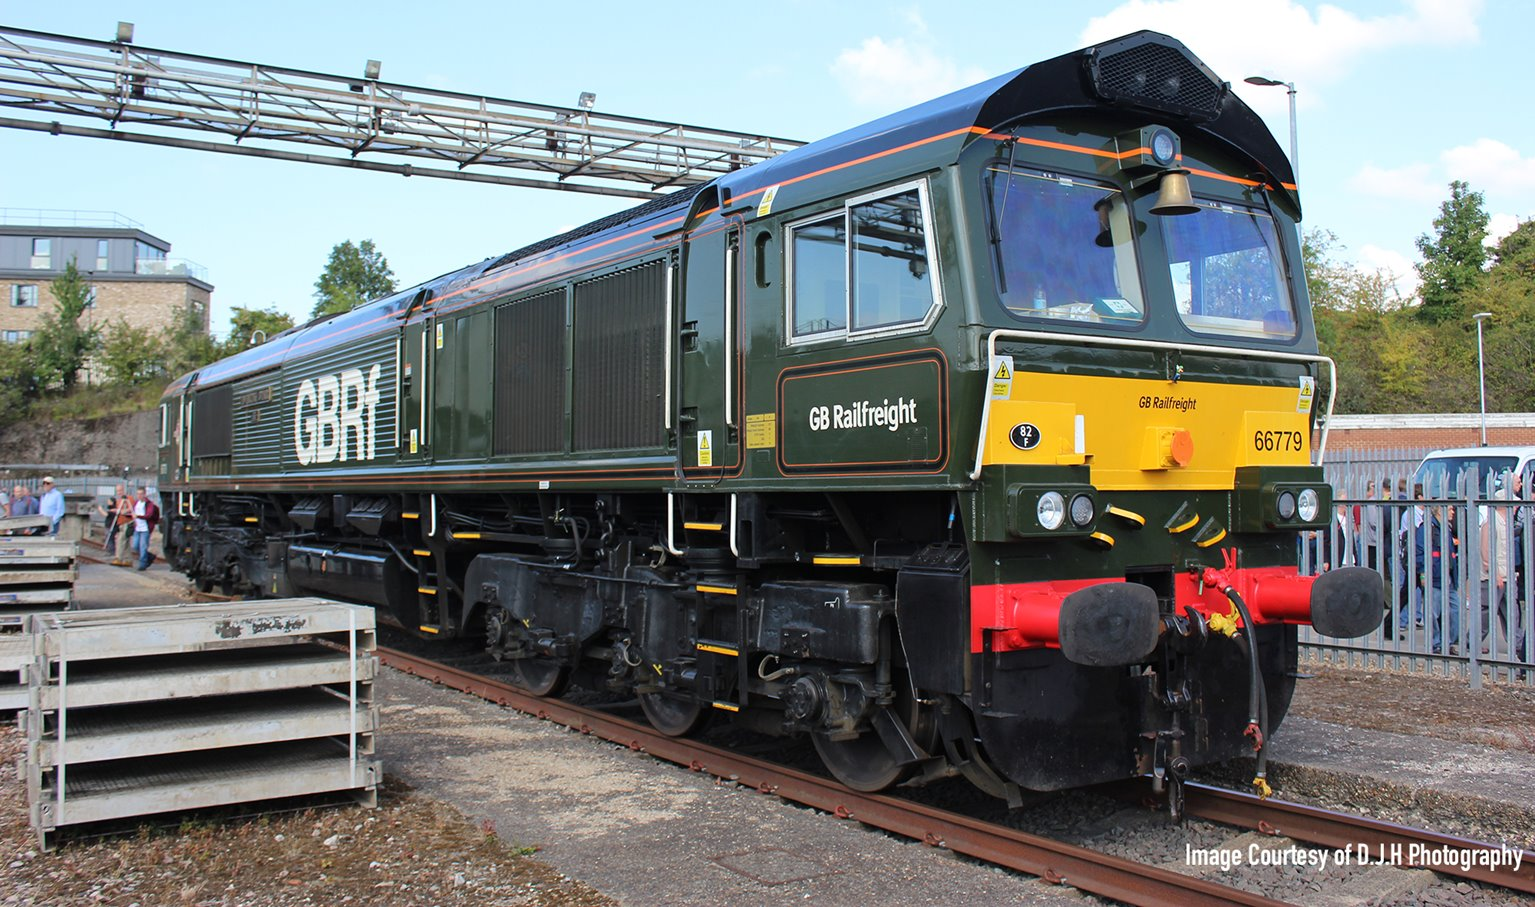 Class 66 779 'Evening Star' GBRF BR Green livery Diesel Locomotive DCC Fitted